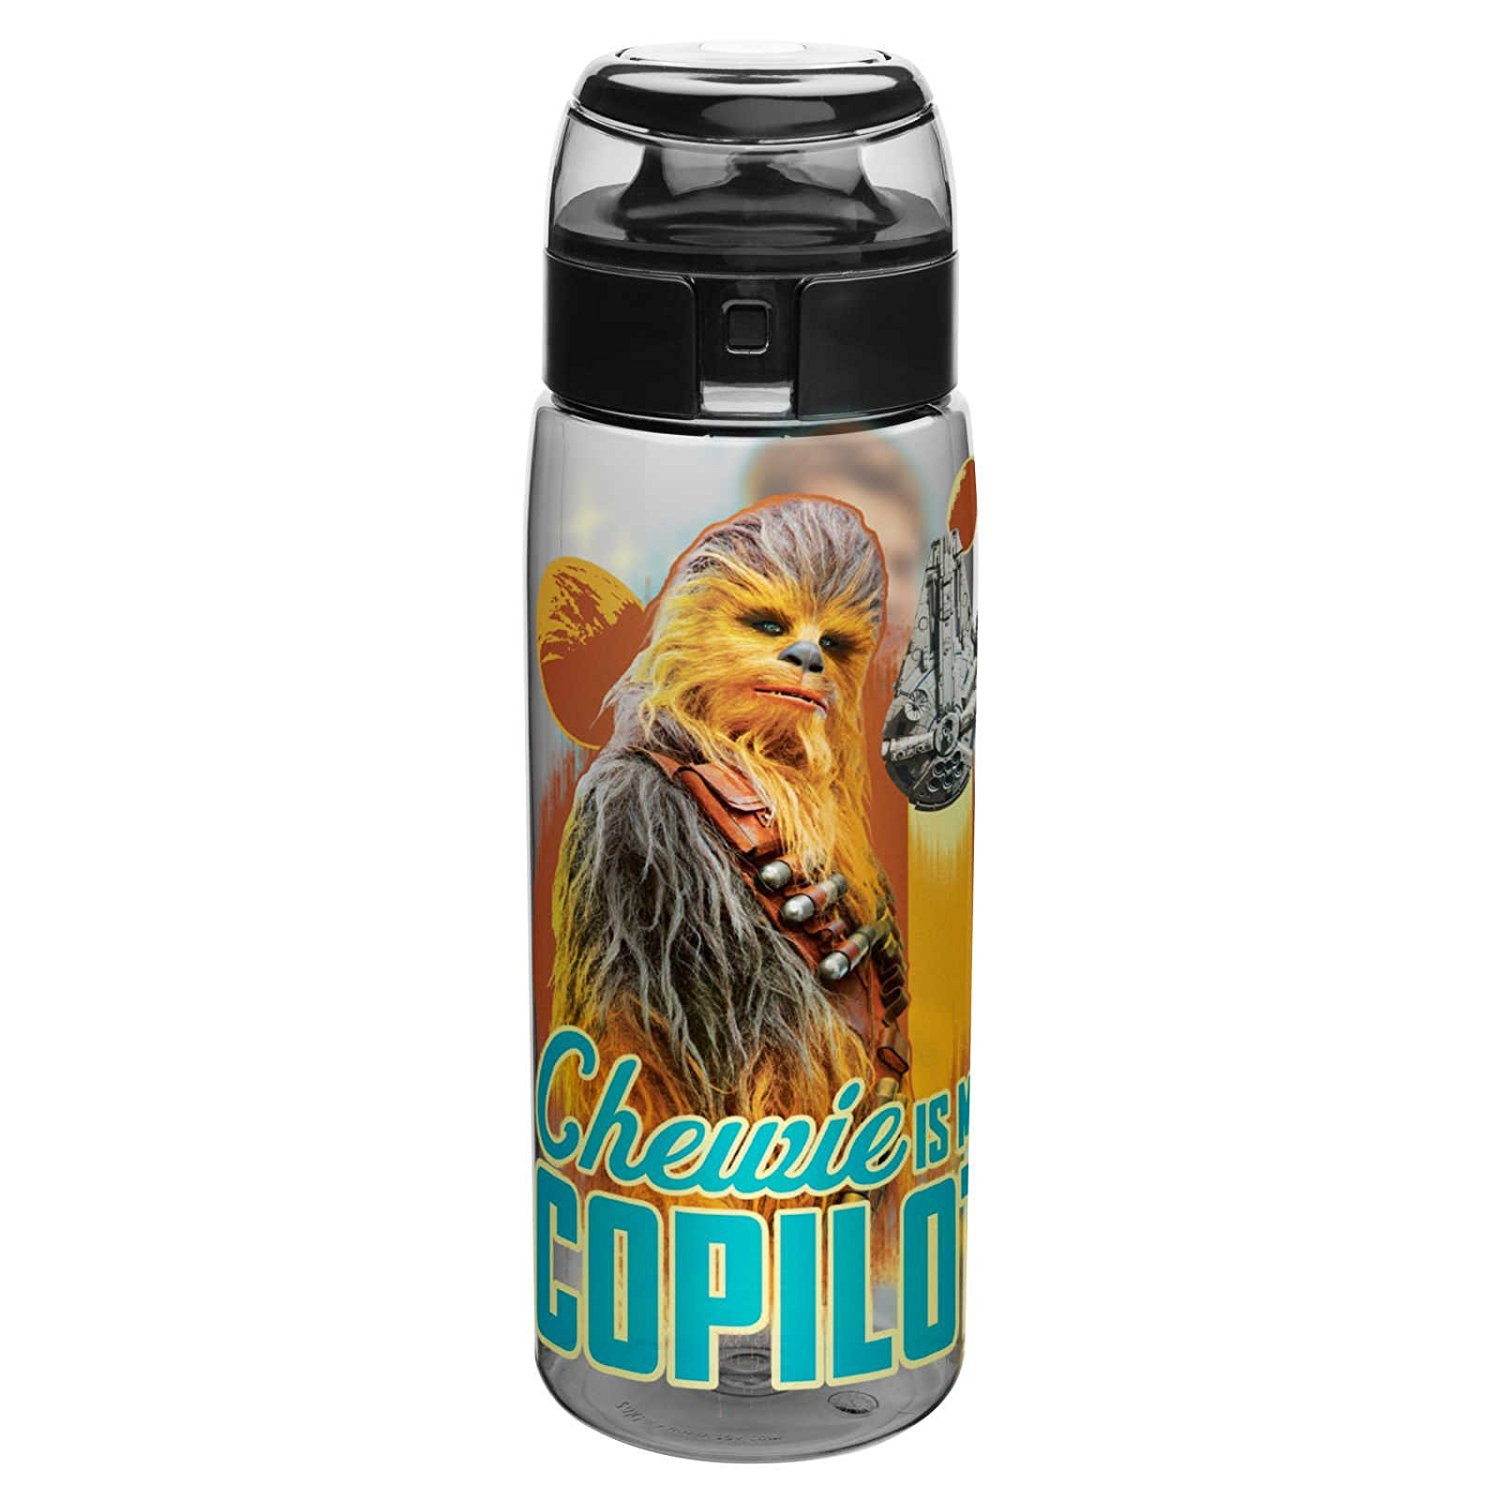 Solo: ASWS Chewbacca Plastic Water Bottle